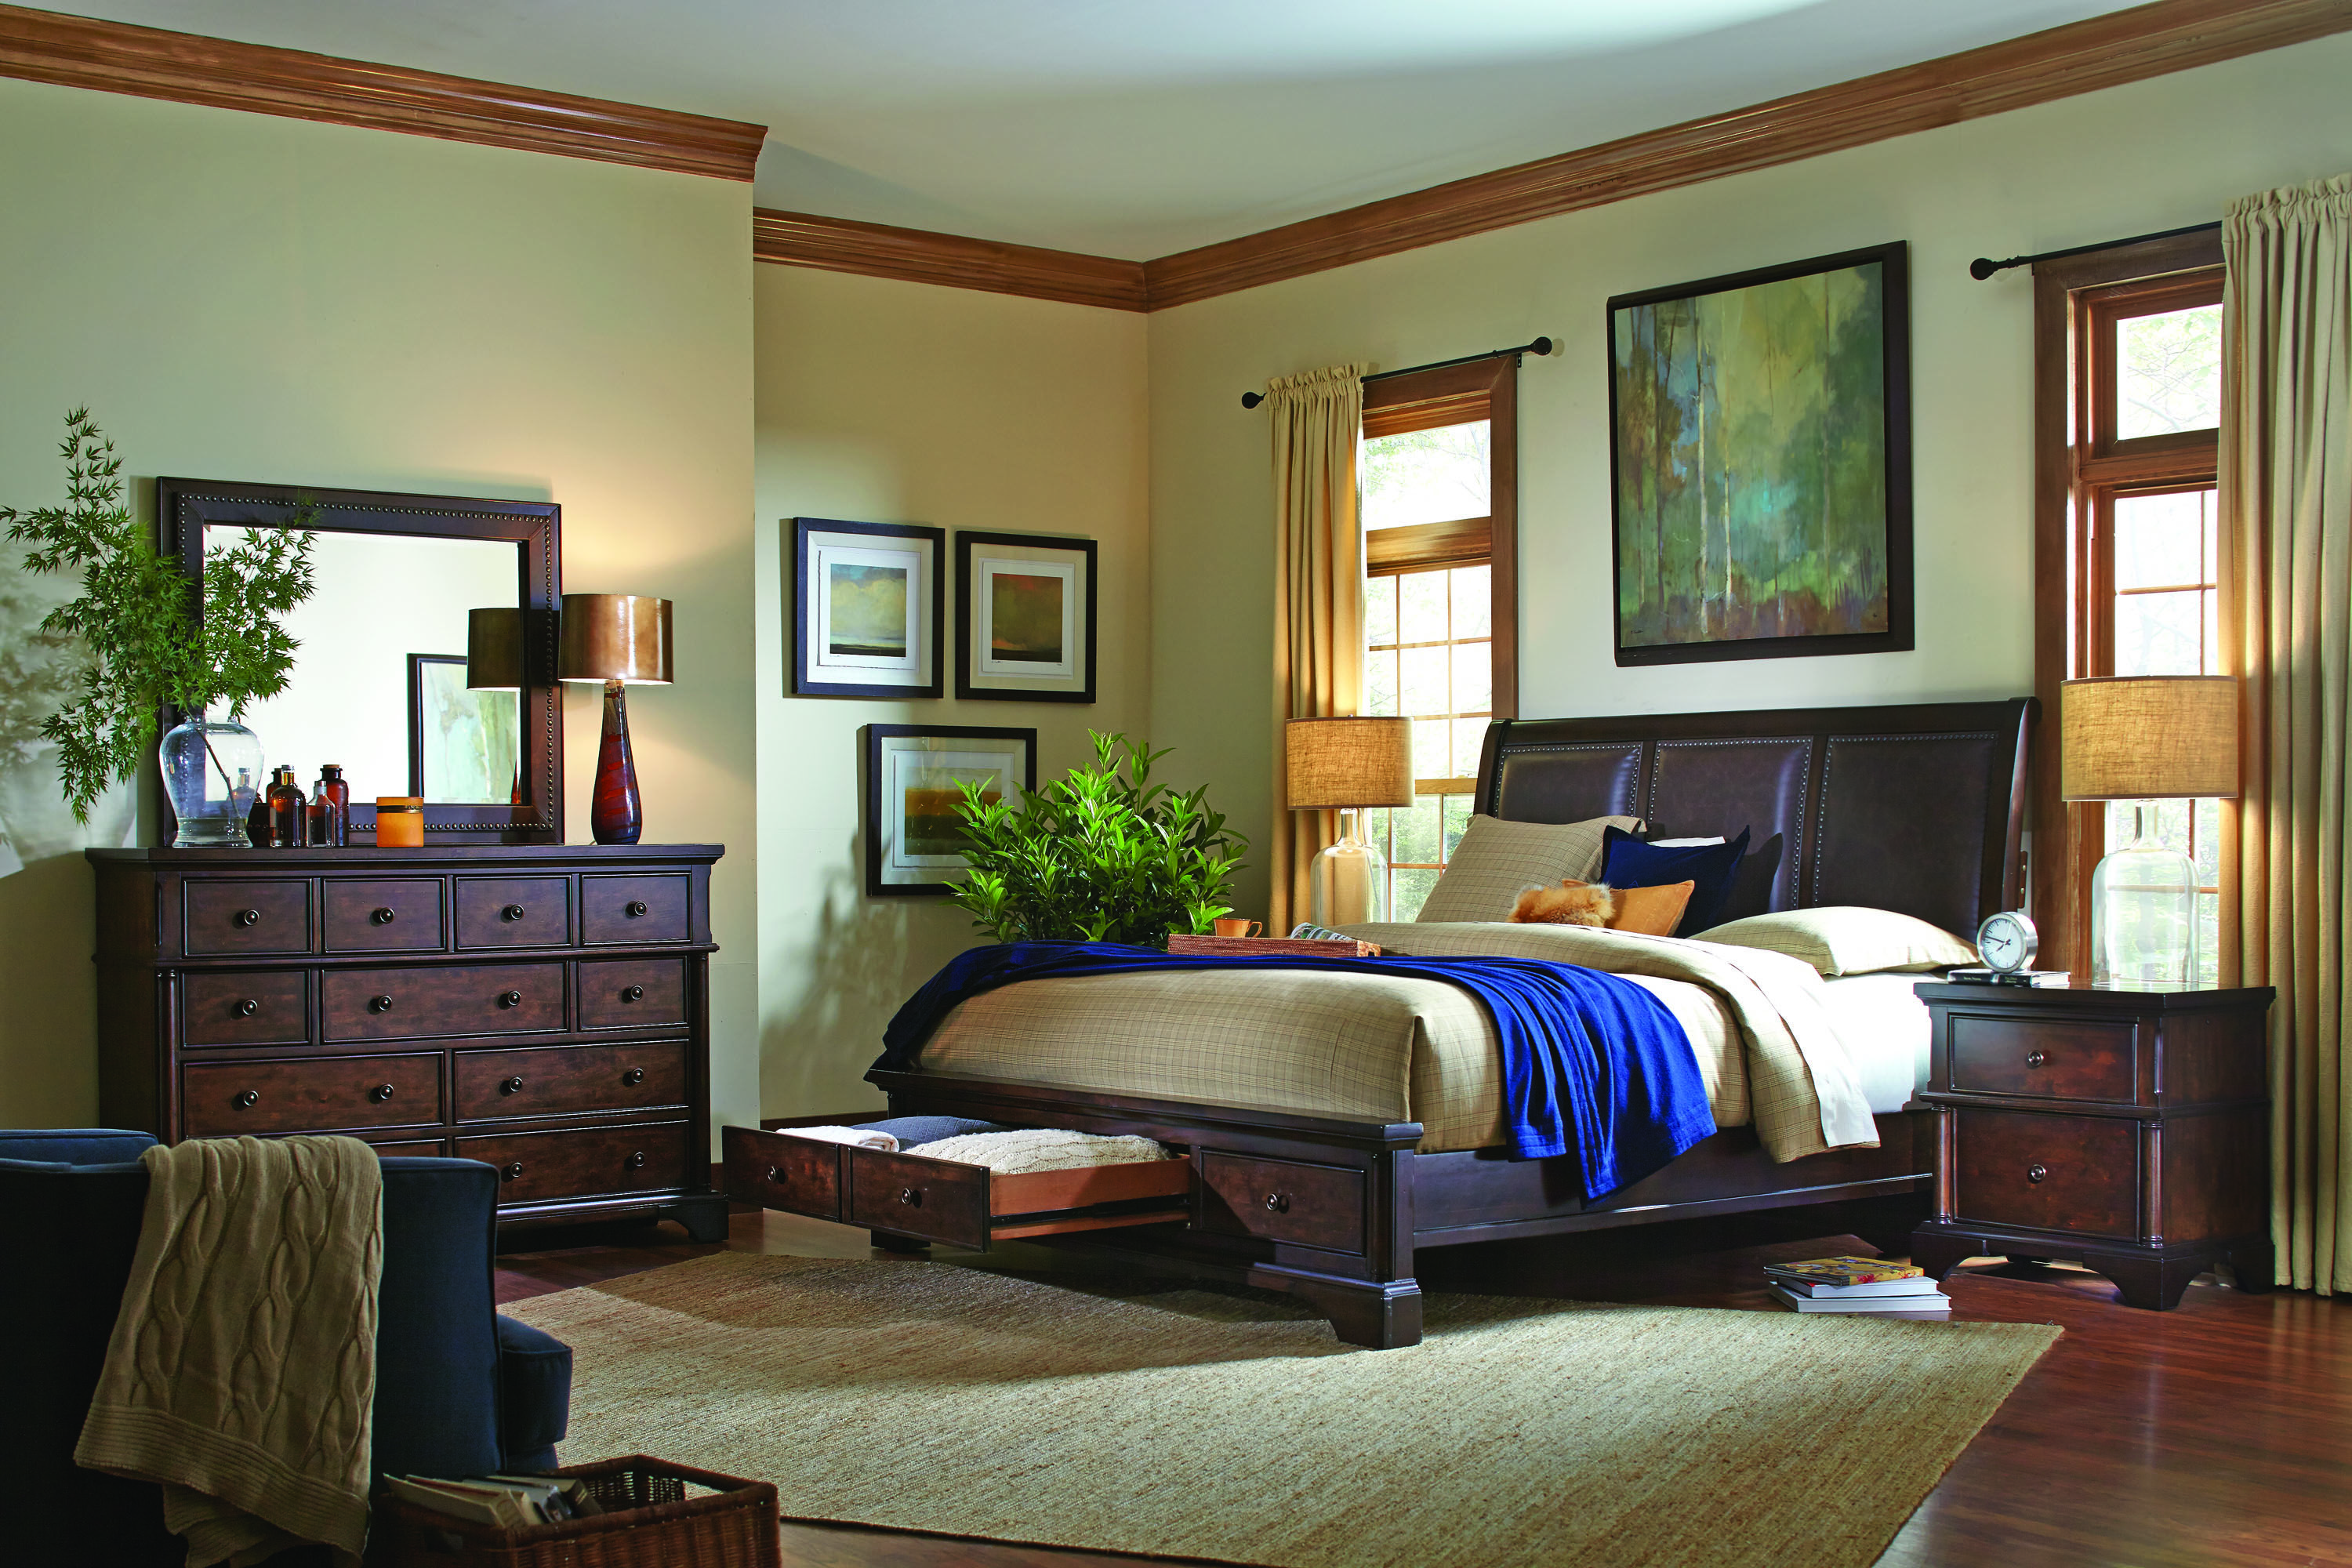 Godby Home Furnishings Noblesville  Carmel and Avon. Bancroft  Bedroom by Aspen  Godby Home Furnishings Noblesville